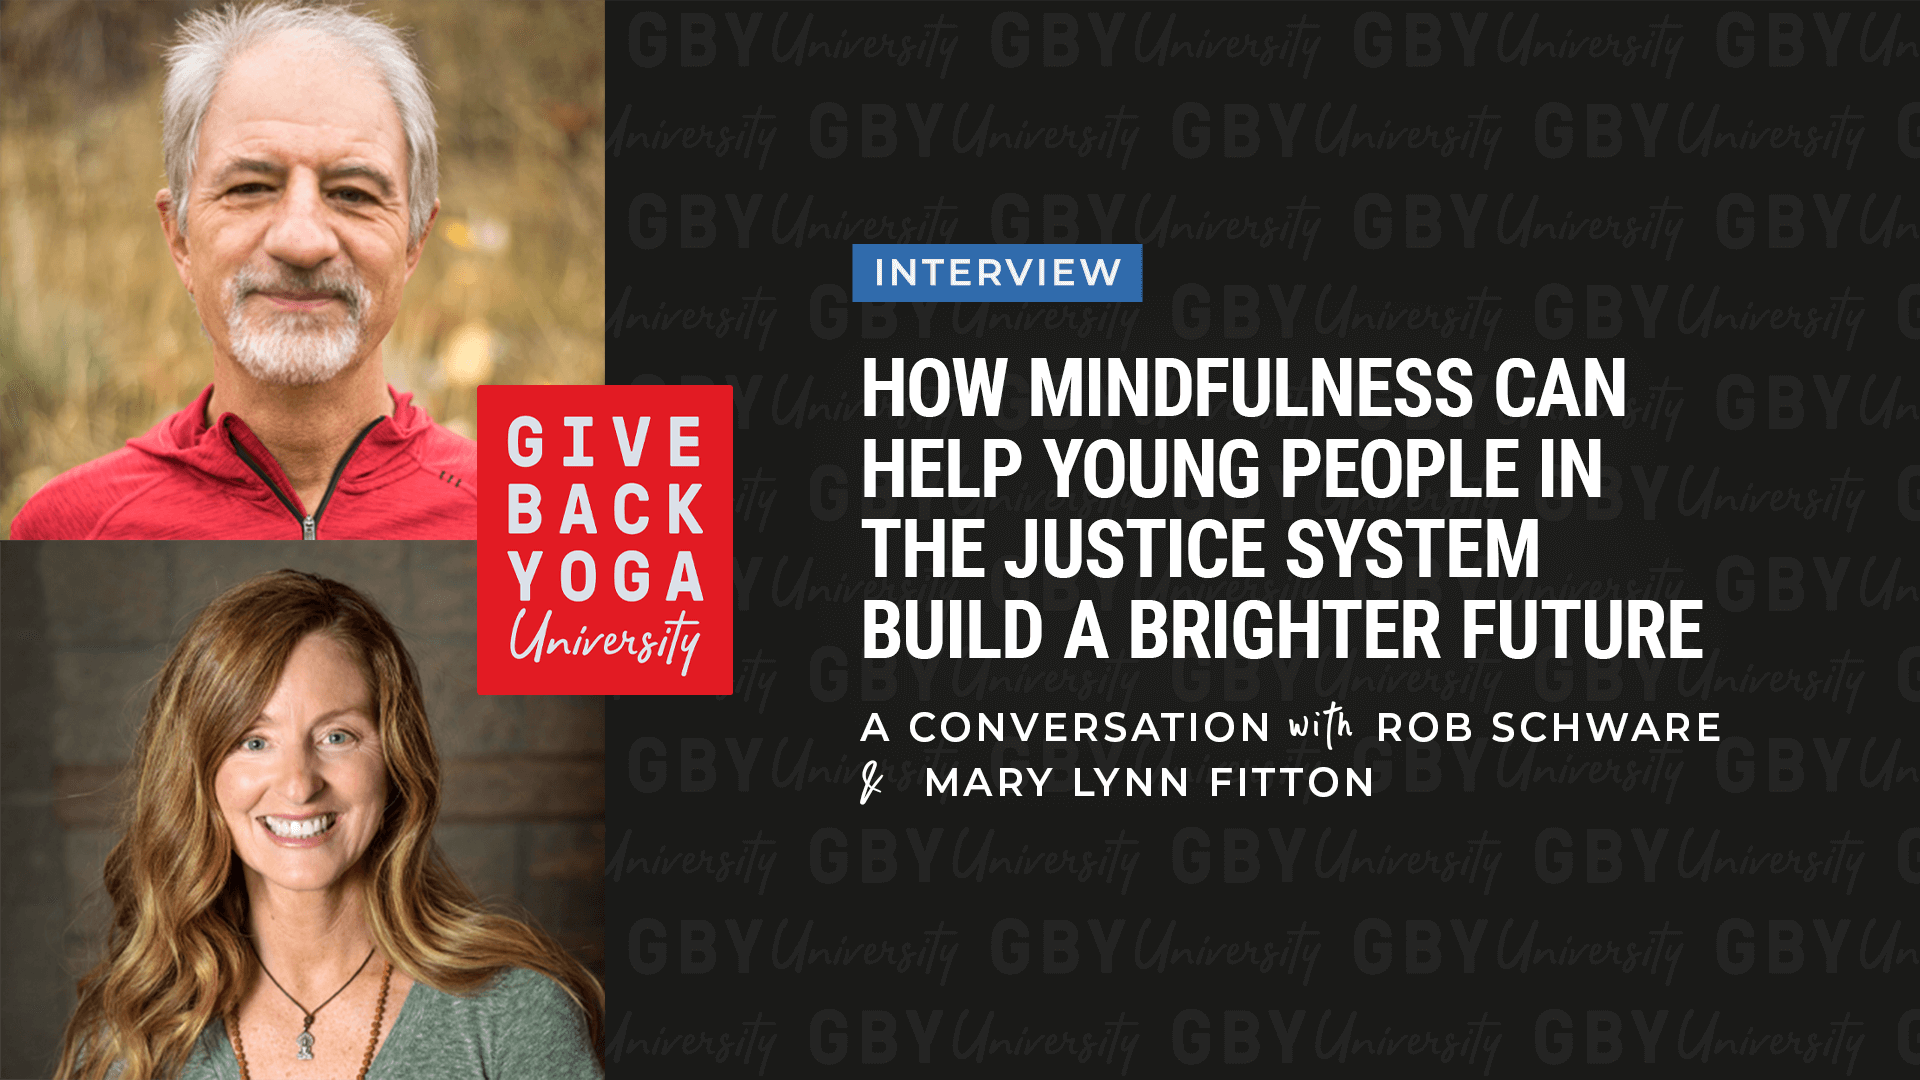 How Mindfulness Can Help Young People in the Justice System Build a Brighter Future